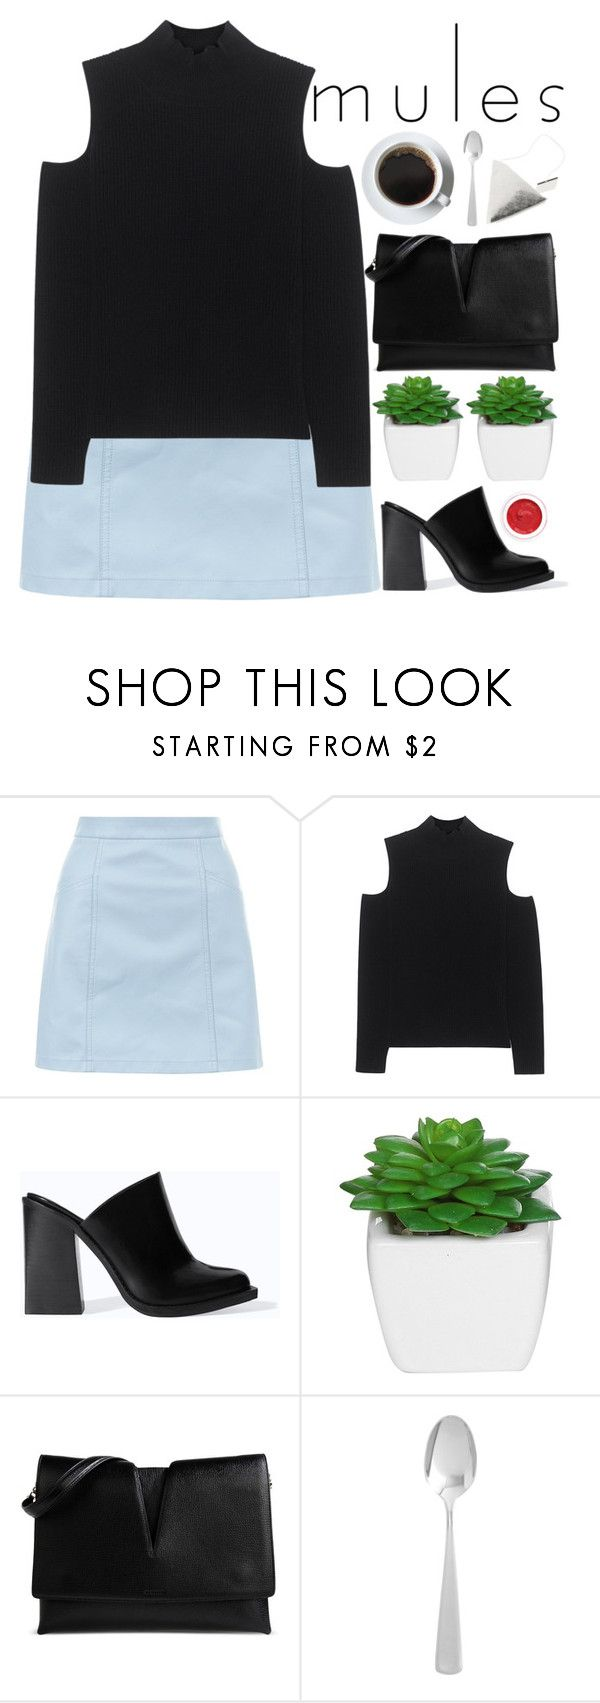 """""""MULES - POLYVORE CONTEST"""" by evangeline-lily ❤ liked on Polyvore featuring New Look, The Mercer N.Y., Zara, Jil Sander, Pier 1 Imports, rms beauty, zara, mules and Spring2017"""